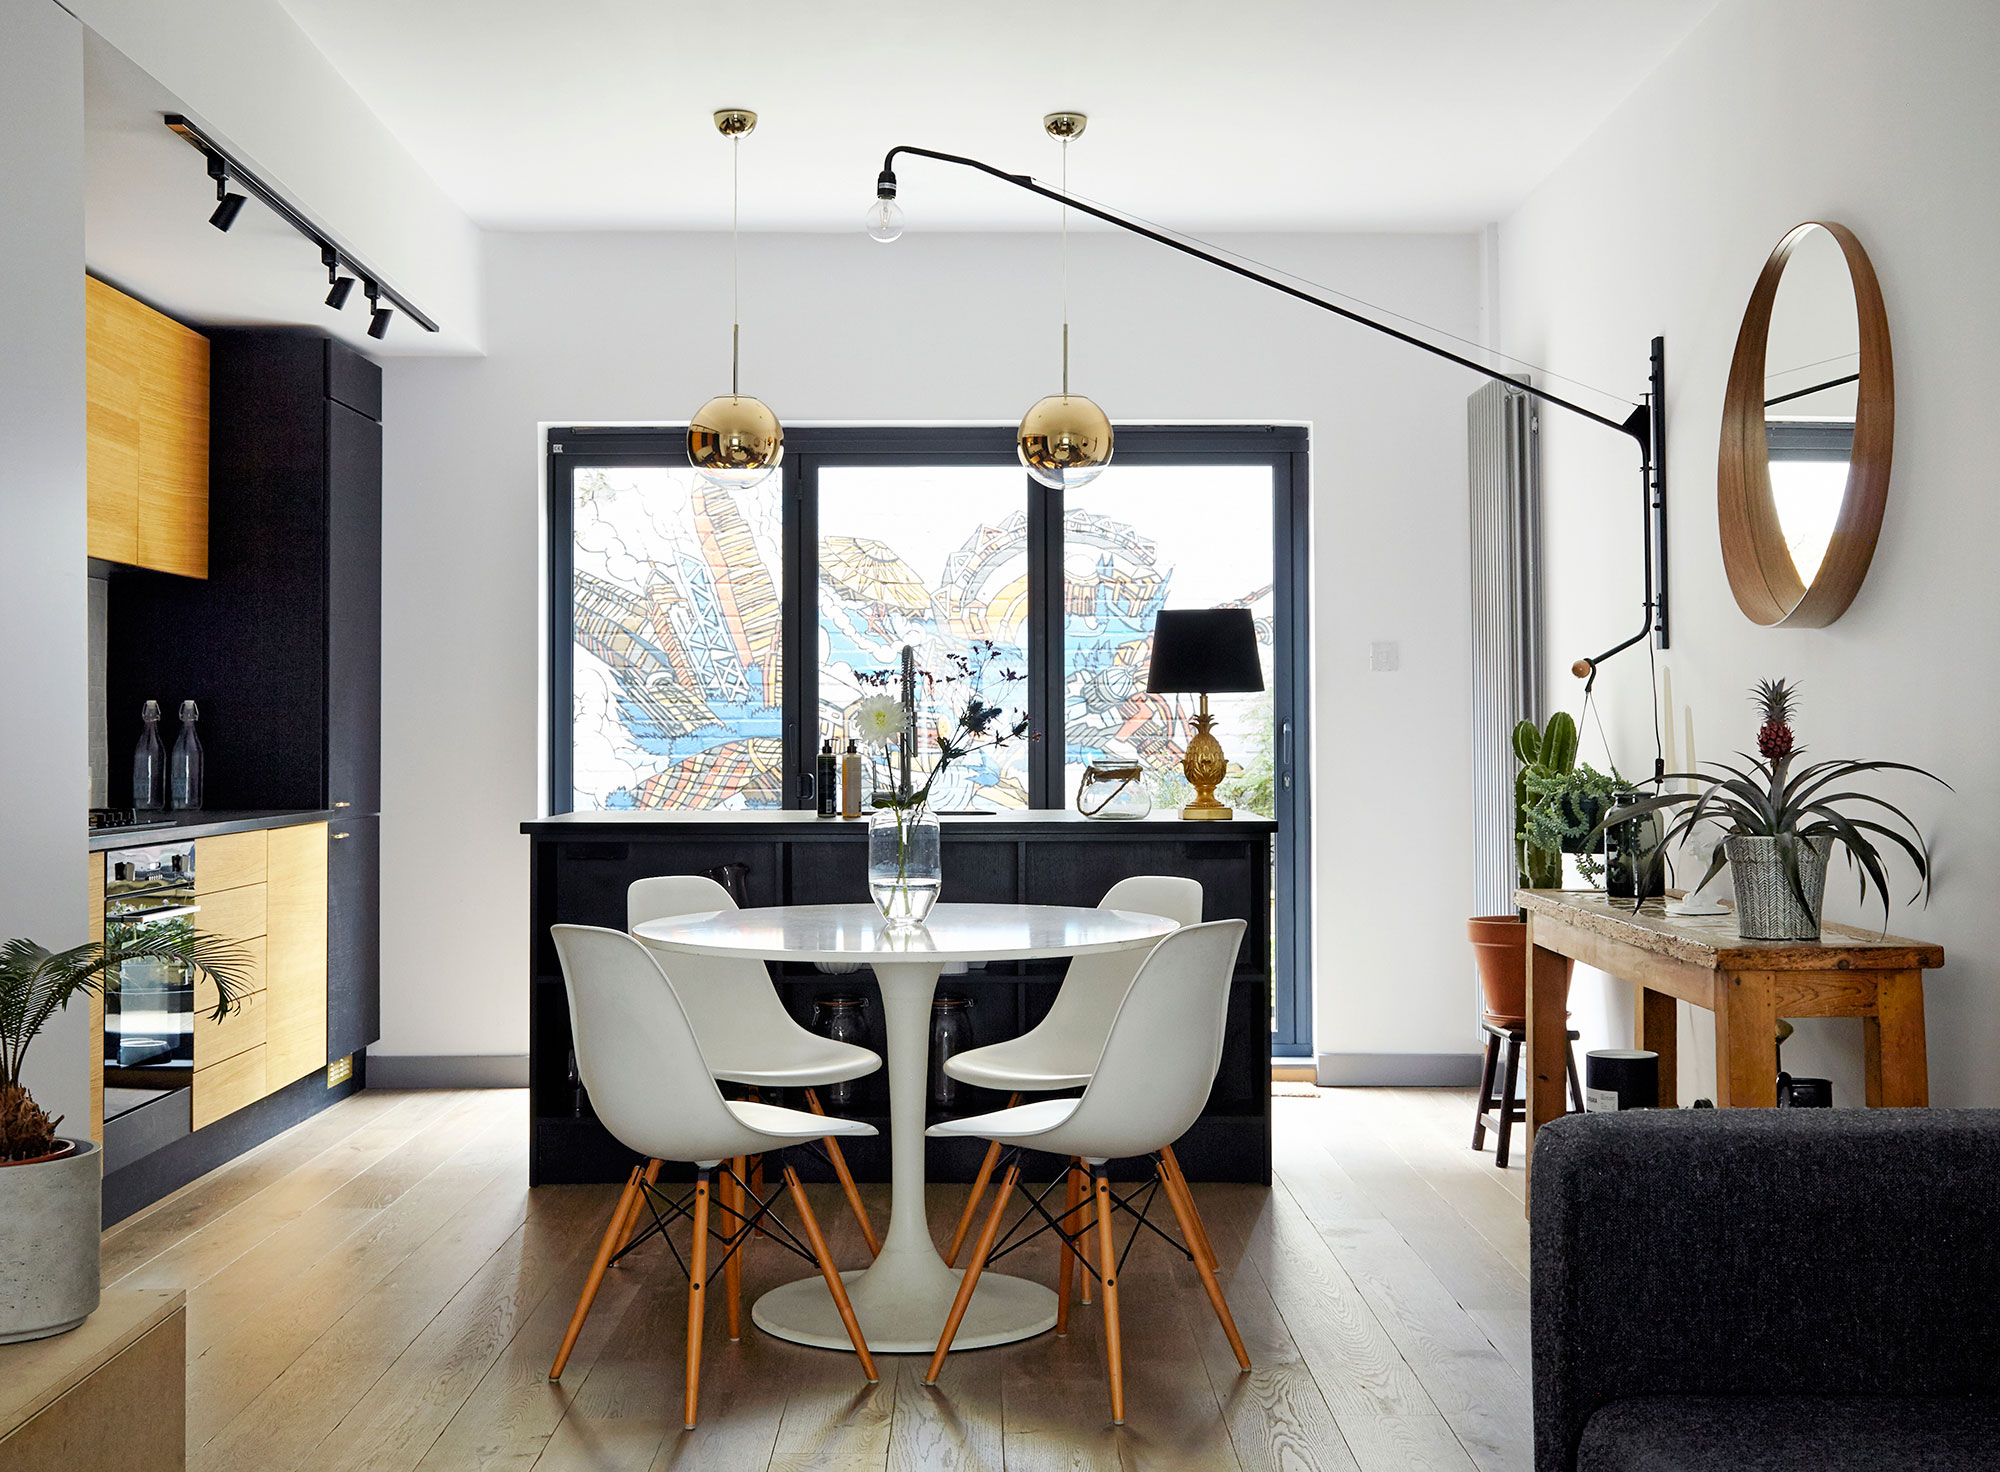 House of Sylphina interior design, Dalston. Monochrome kitchen dining room with gold accents